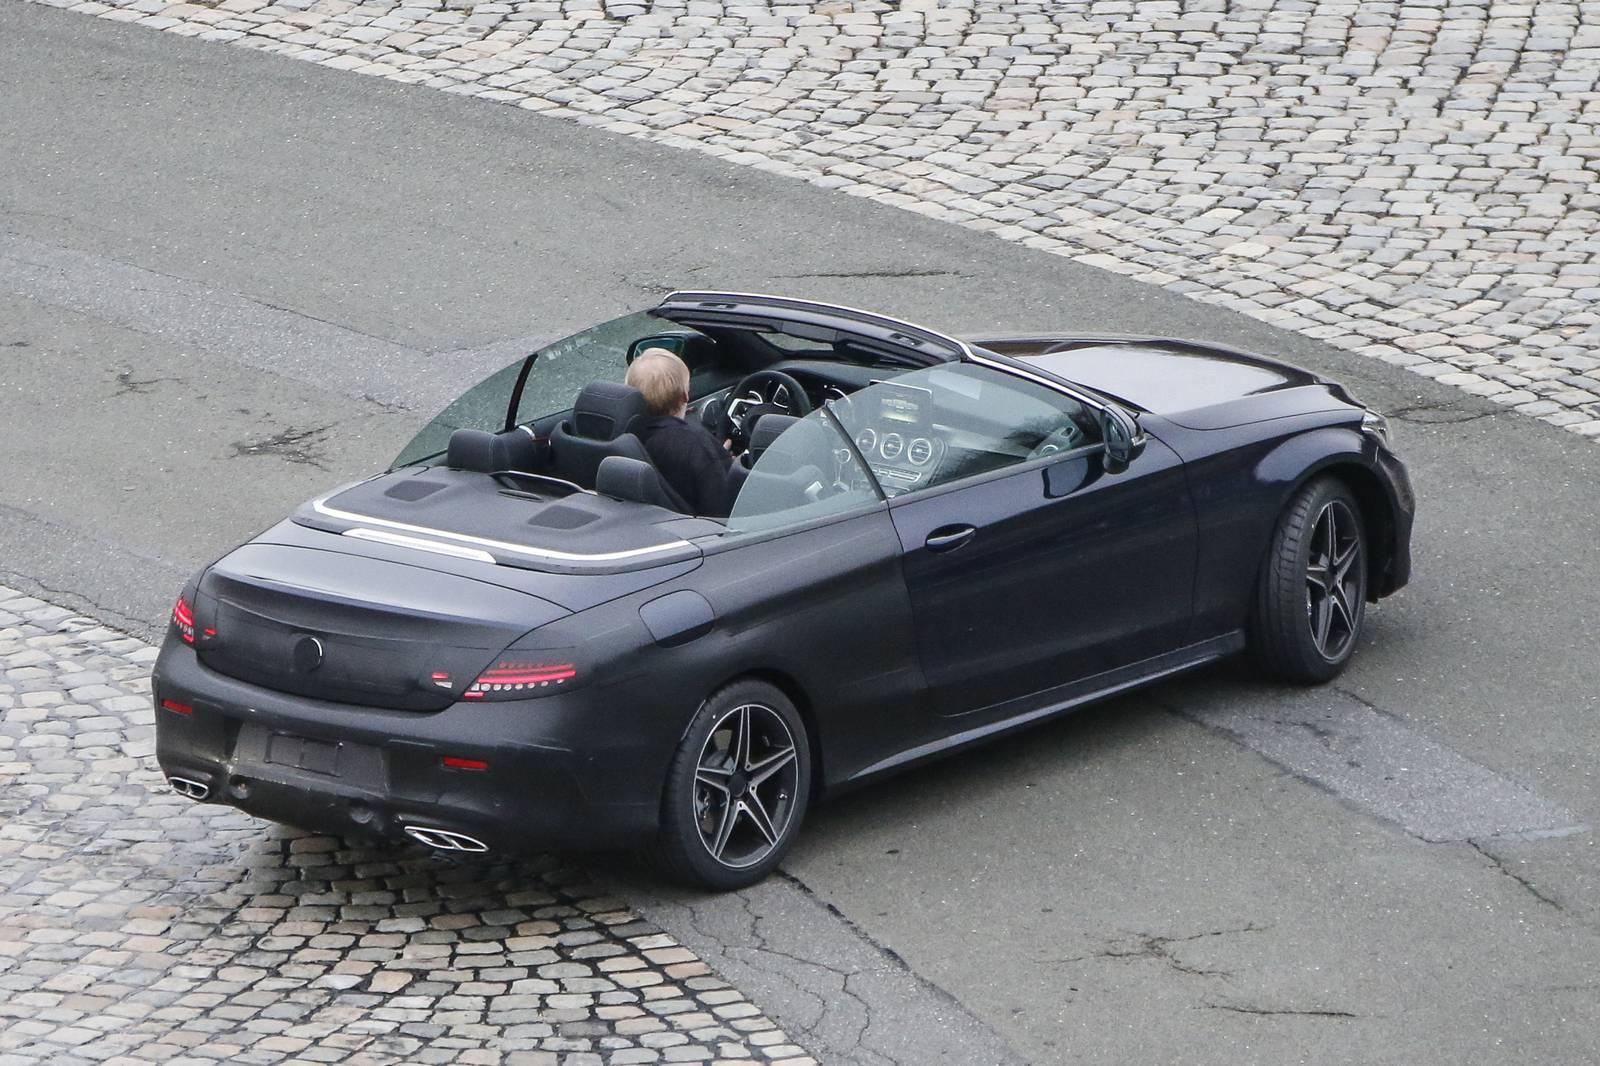 Spy images from drop top 2017 new mercedes c class for Drop top mercedes benz prices